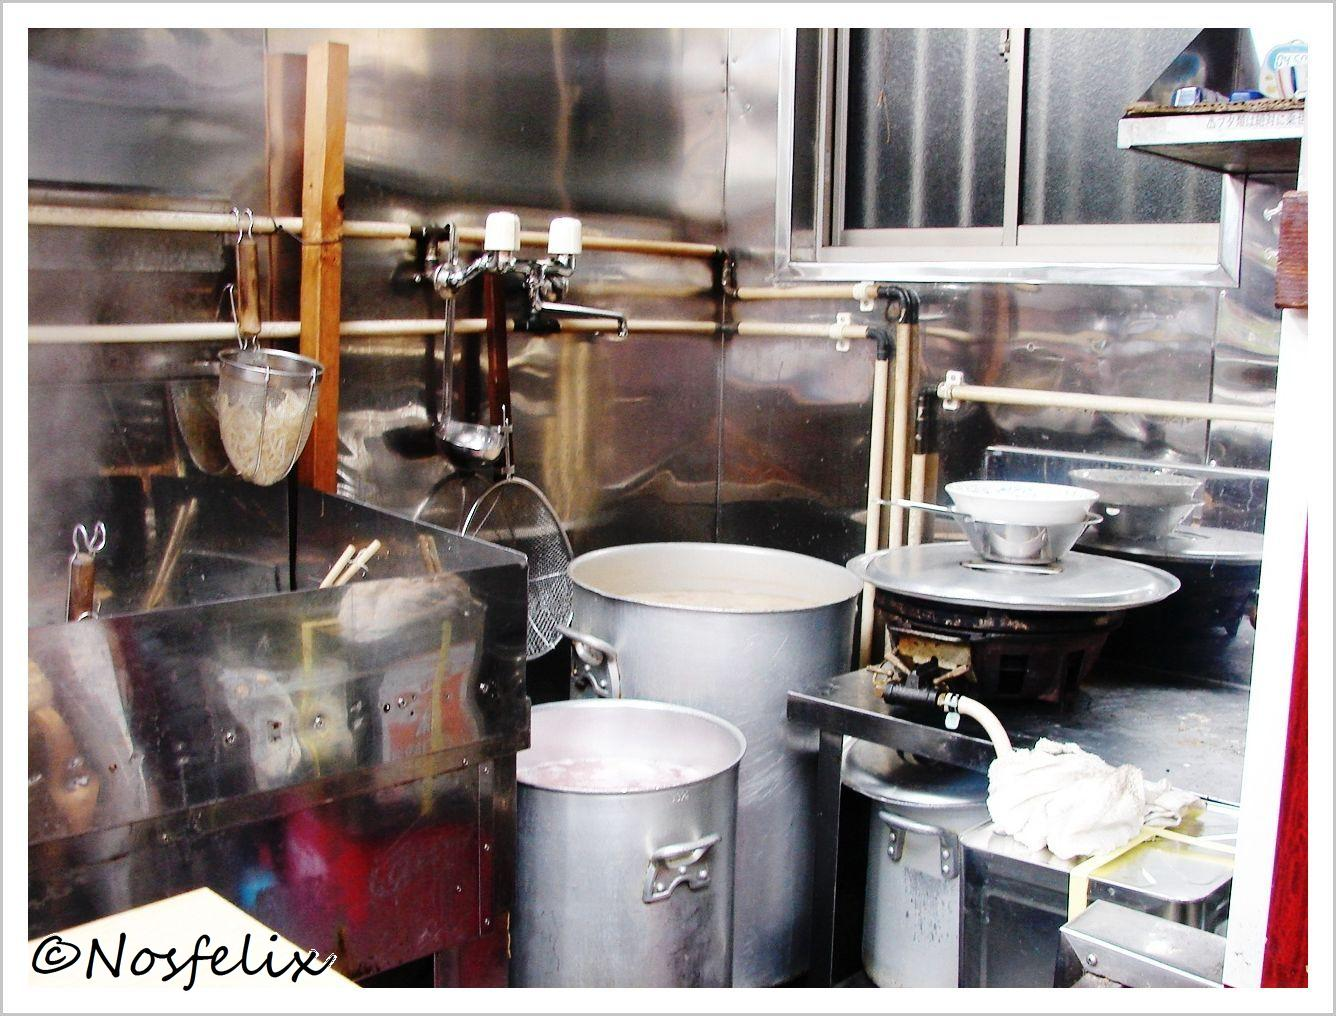 Japanese Restaurants In Tokyo Menmen Kamezo Interior Kitchen Area